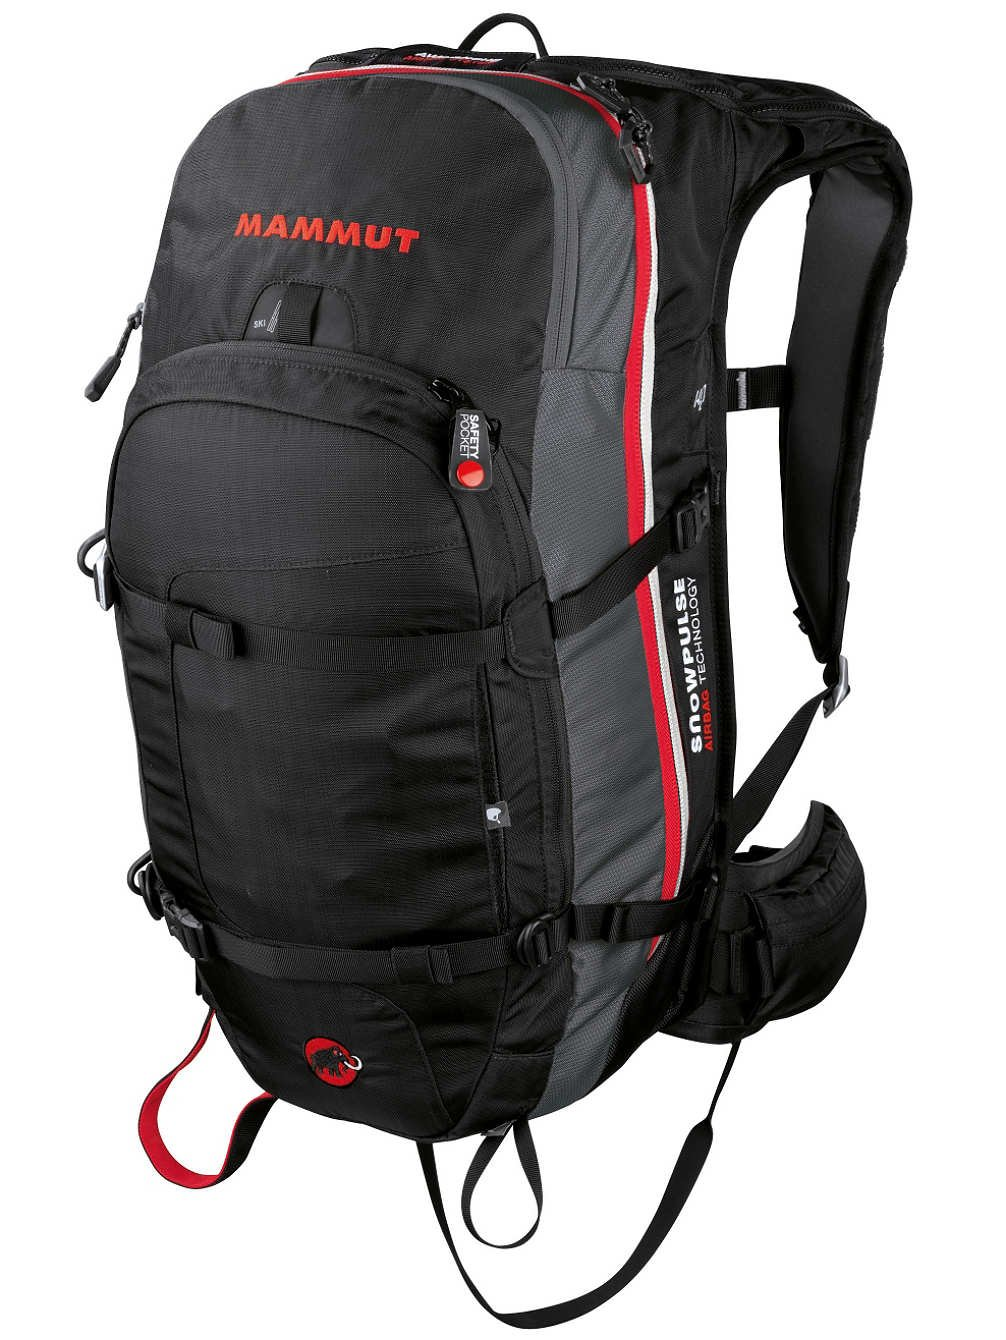 elegant shoes reputable site best wholesaler Mammut Pro Protection Airbag avalanche backpack Black black/white Size:33 x  21 x 53 cm